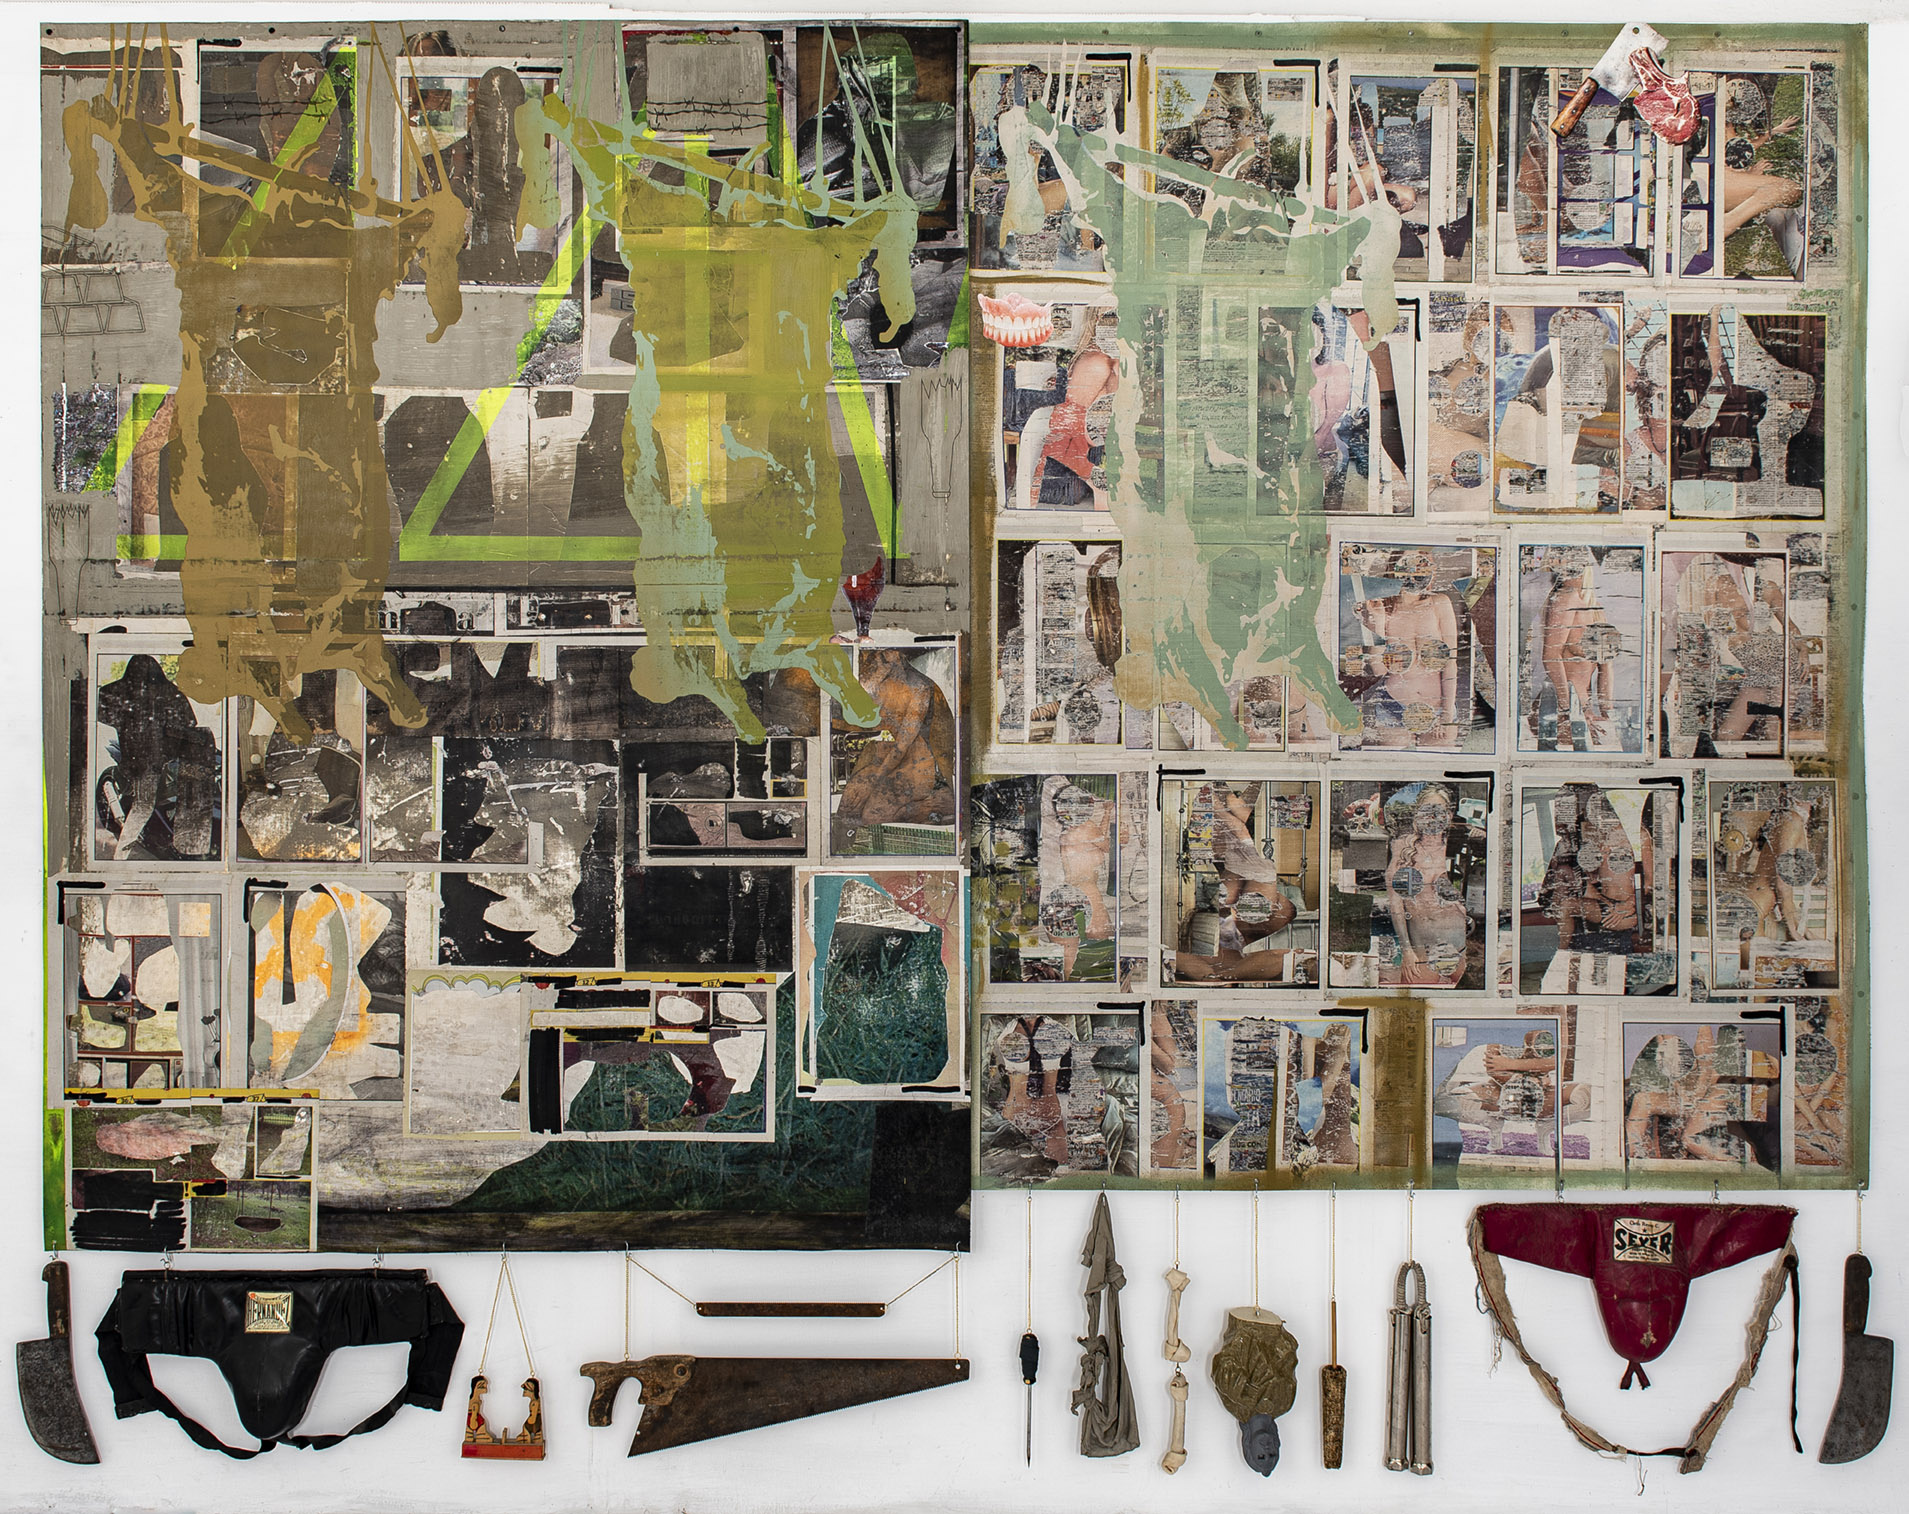 2020 Collage, transfer and enamel on canvas, mixed media, found objects 92.5 x 116 in (234 x 294 cm) - Marc Straus Gallery